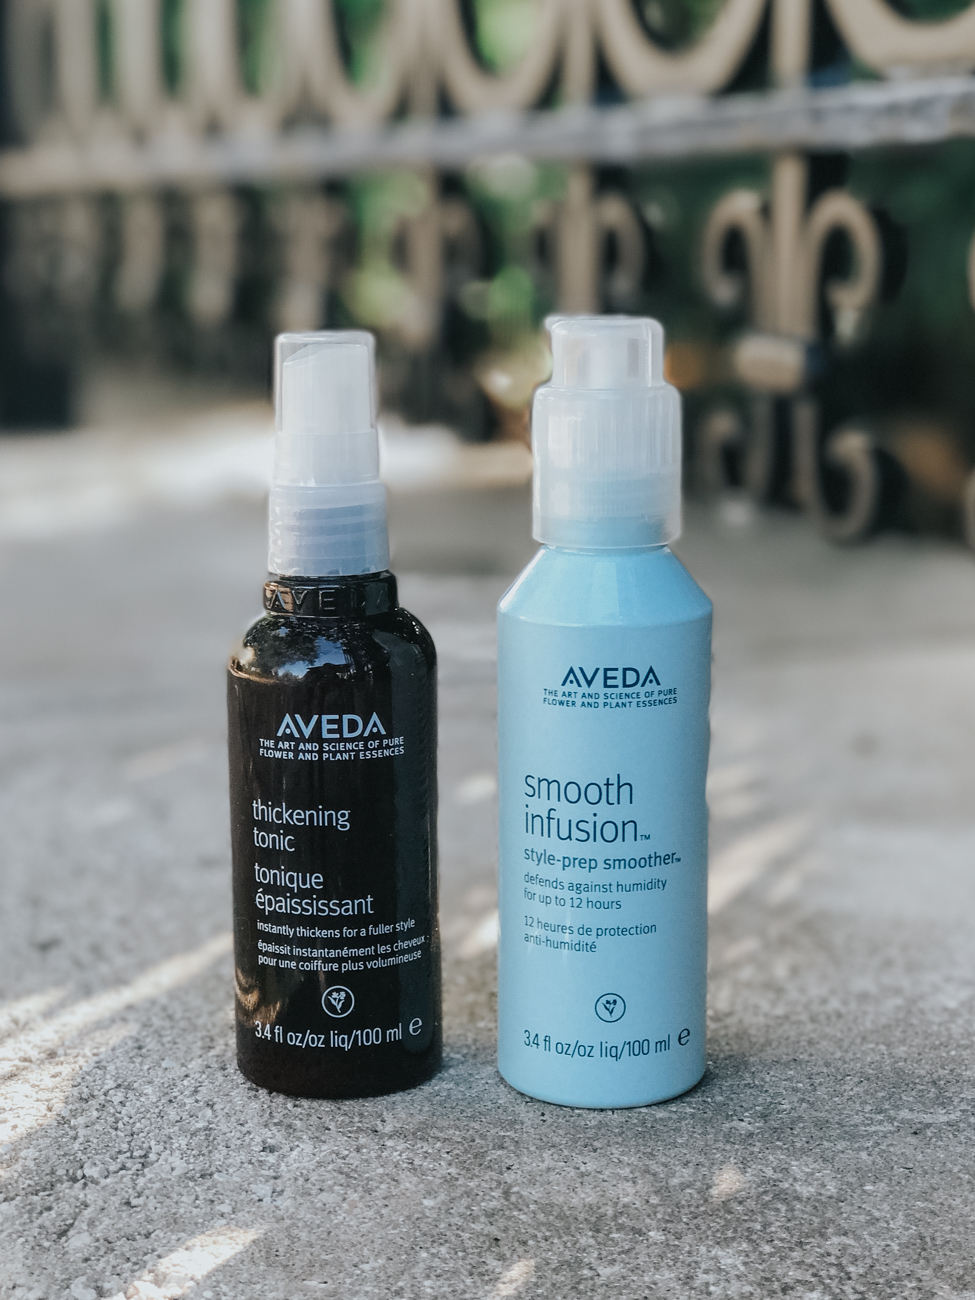 Apply Aveda's Smooth Infusion Style-prep Smoother on damp hair to defends against humidity for up to 12 hours